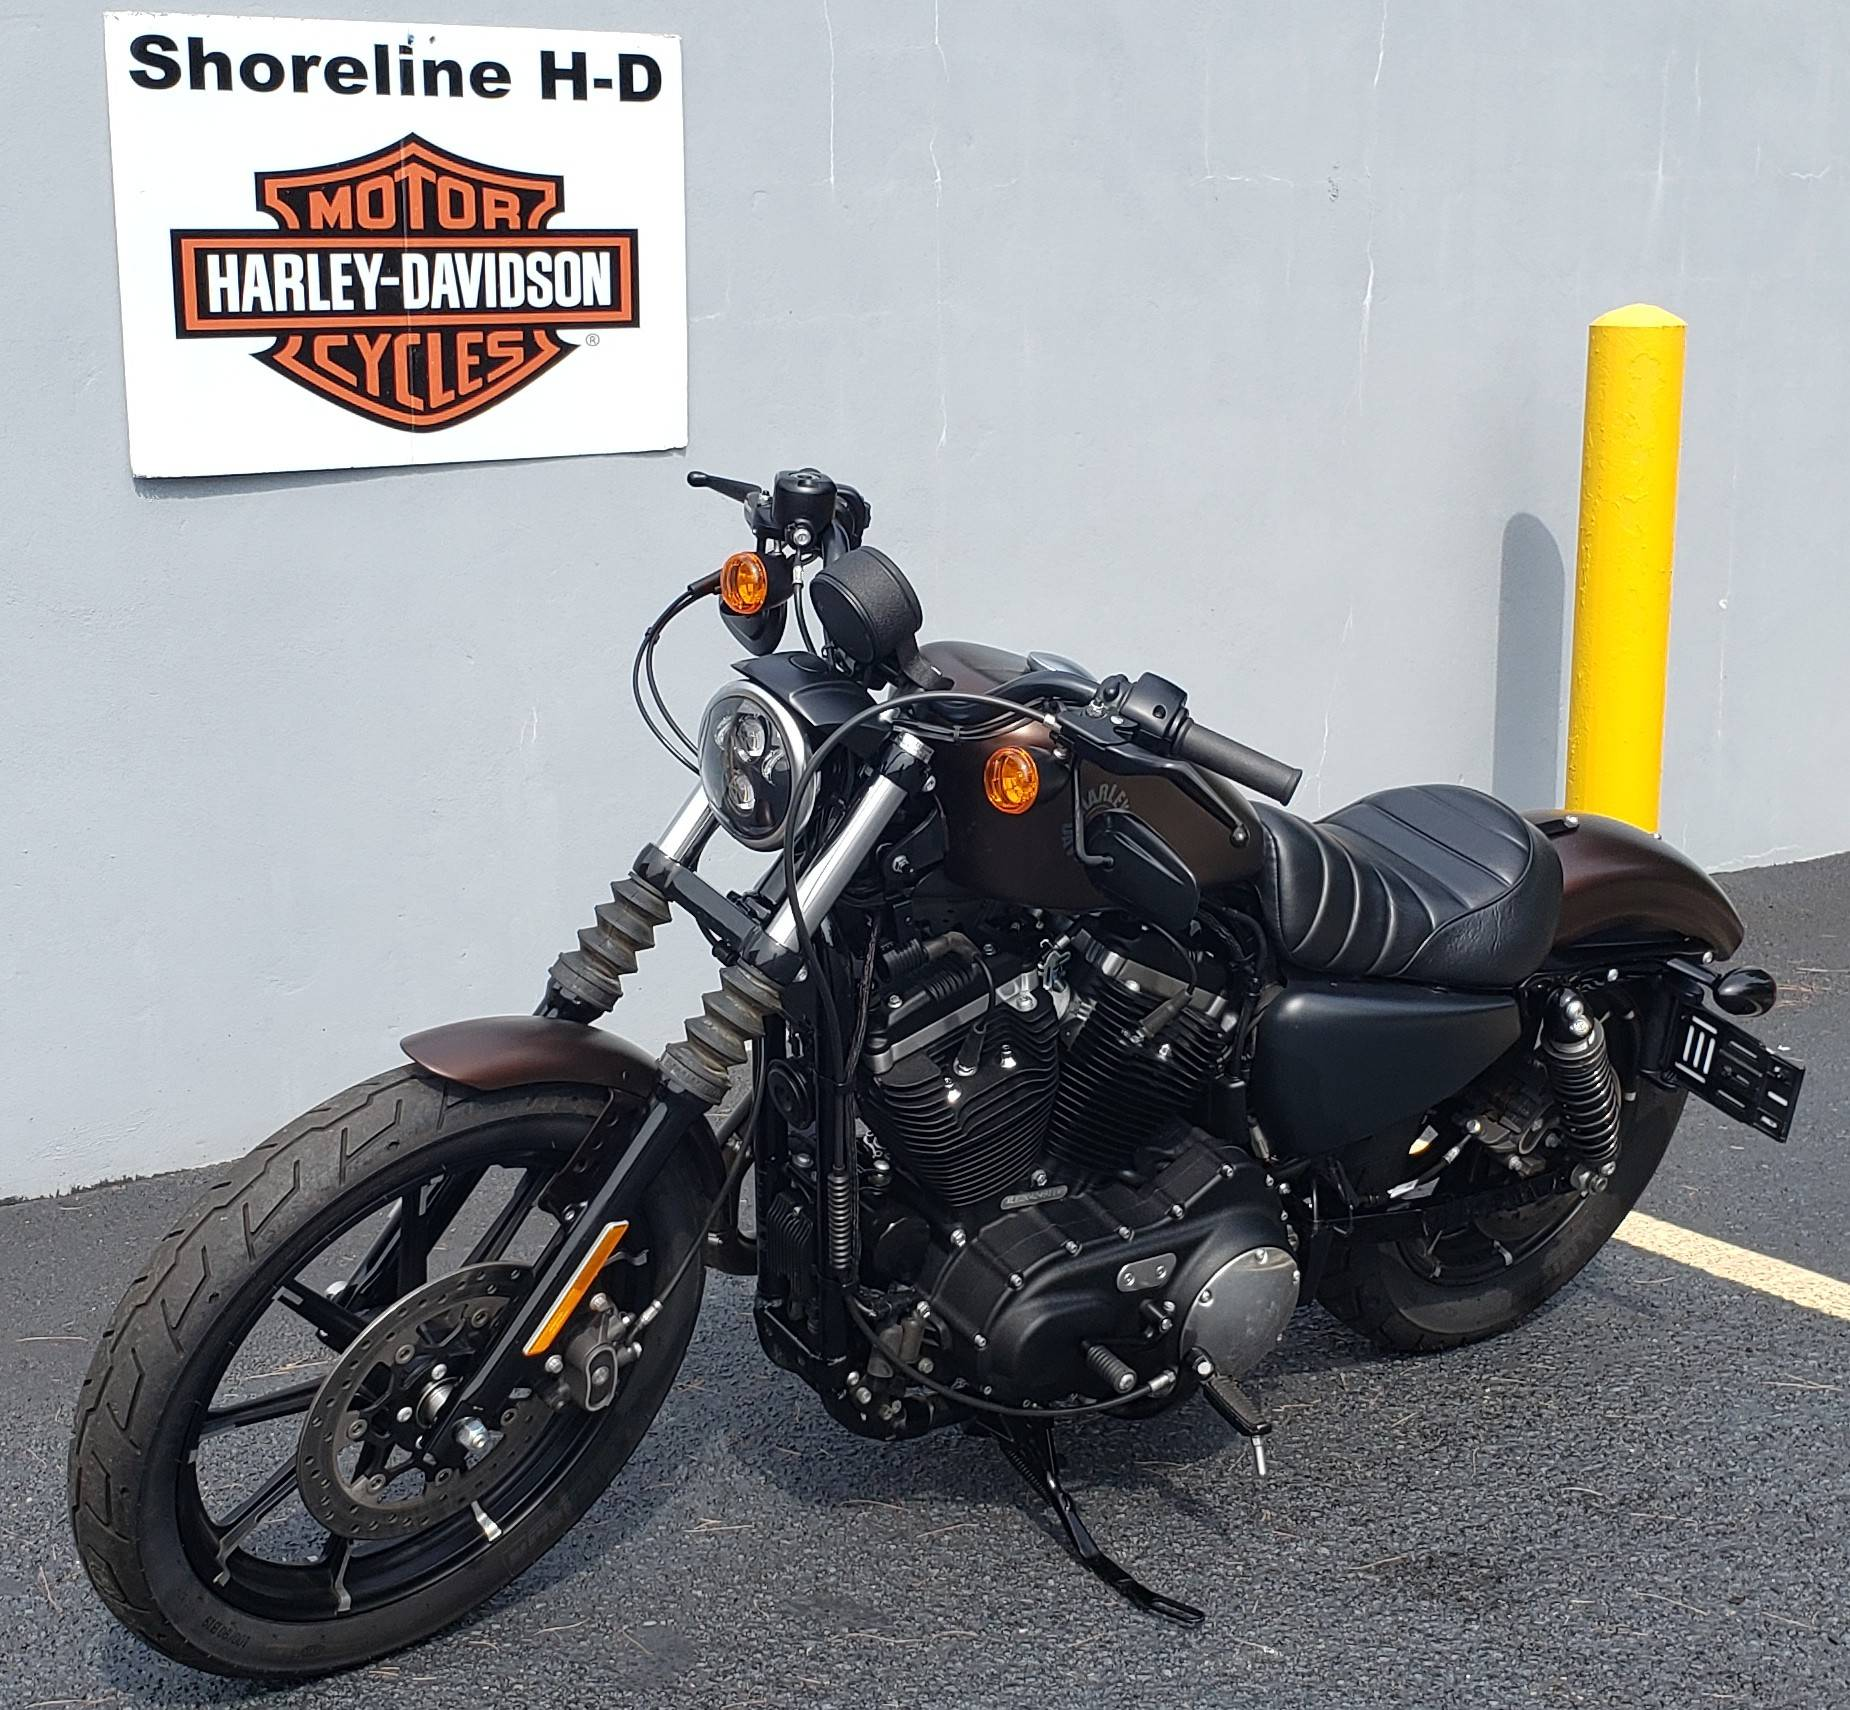 2019 Harley-Davidson Iron 883 in West Long Branch, New Jersey - Photo 7